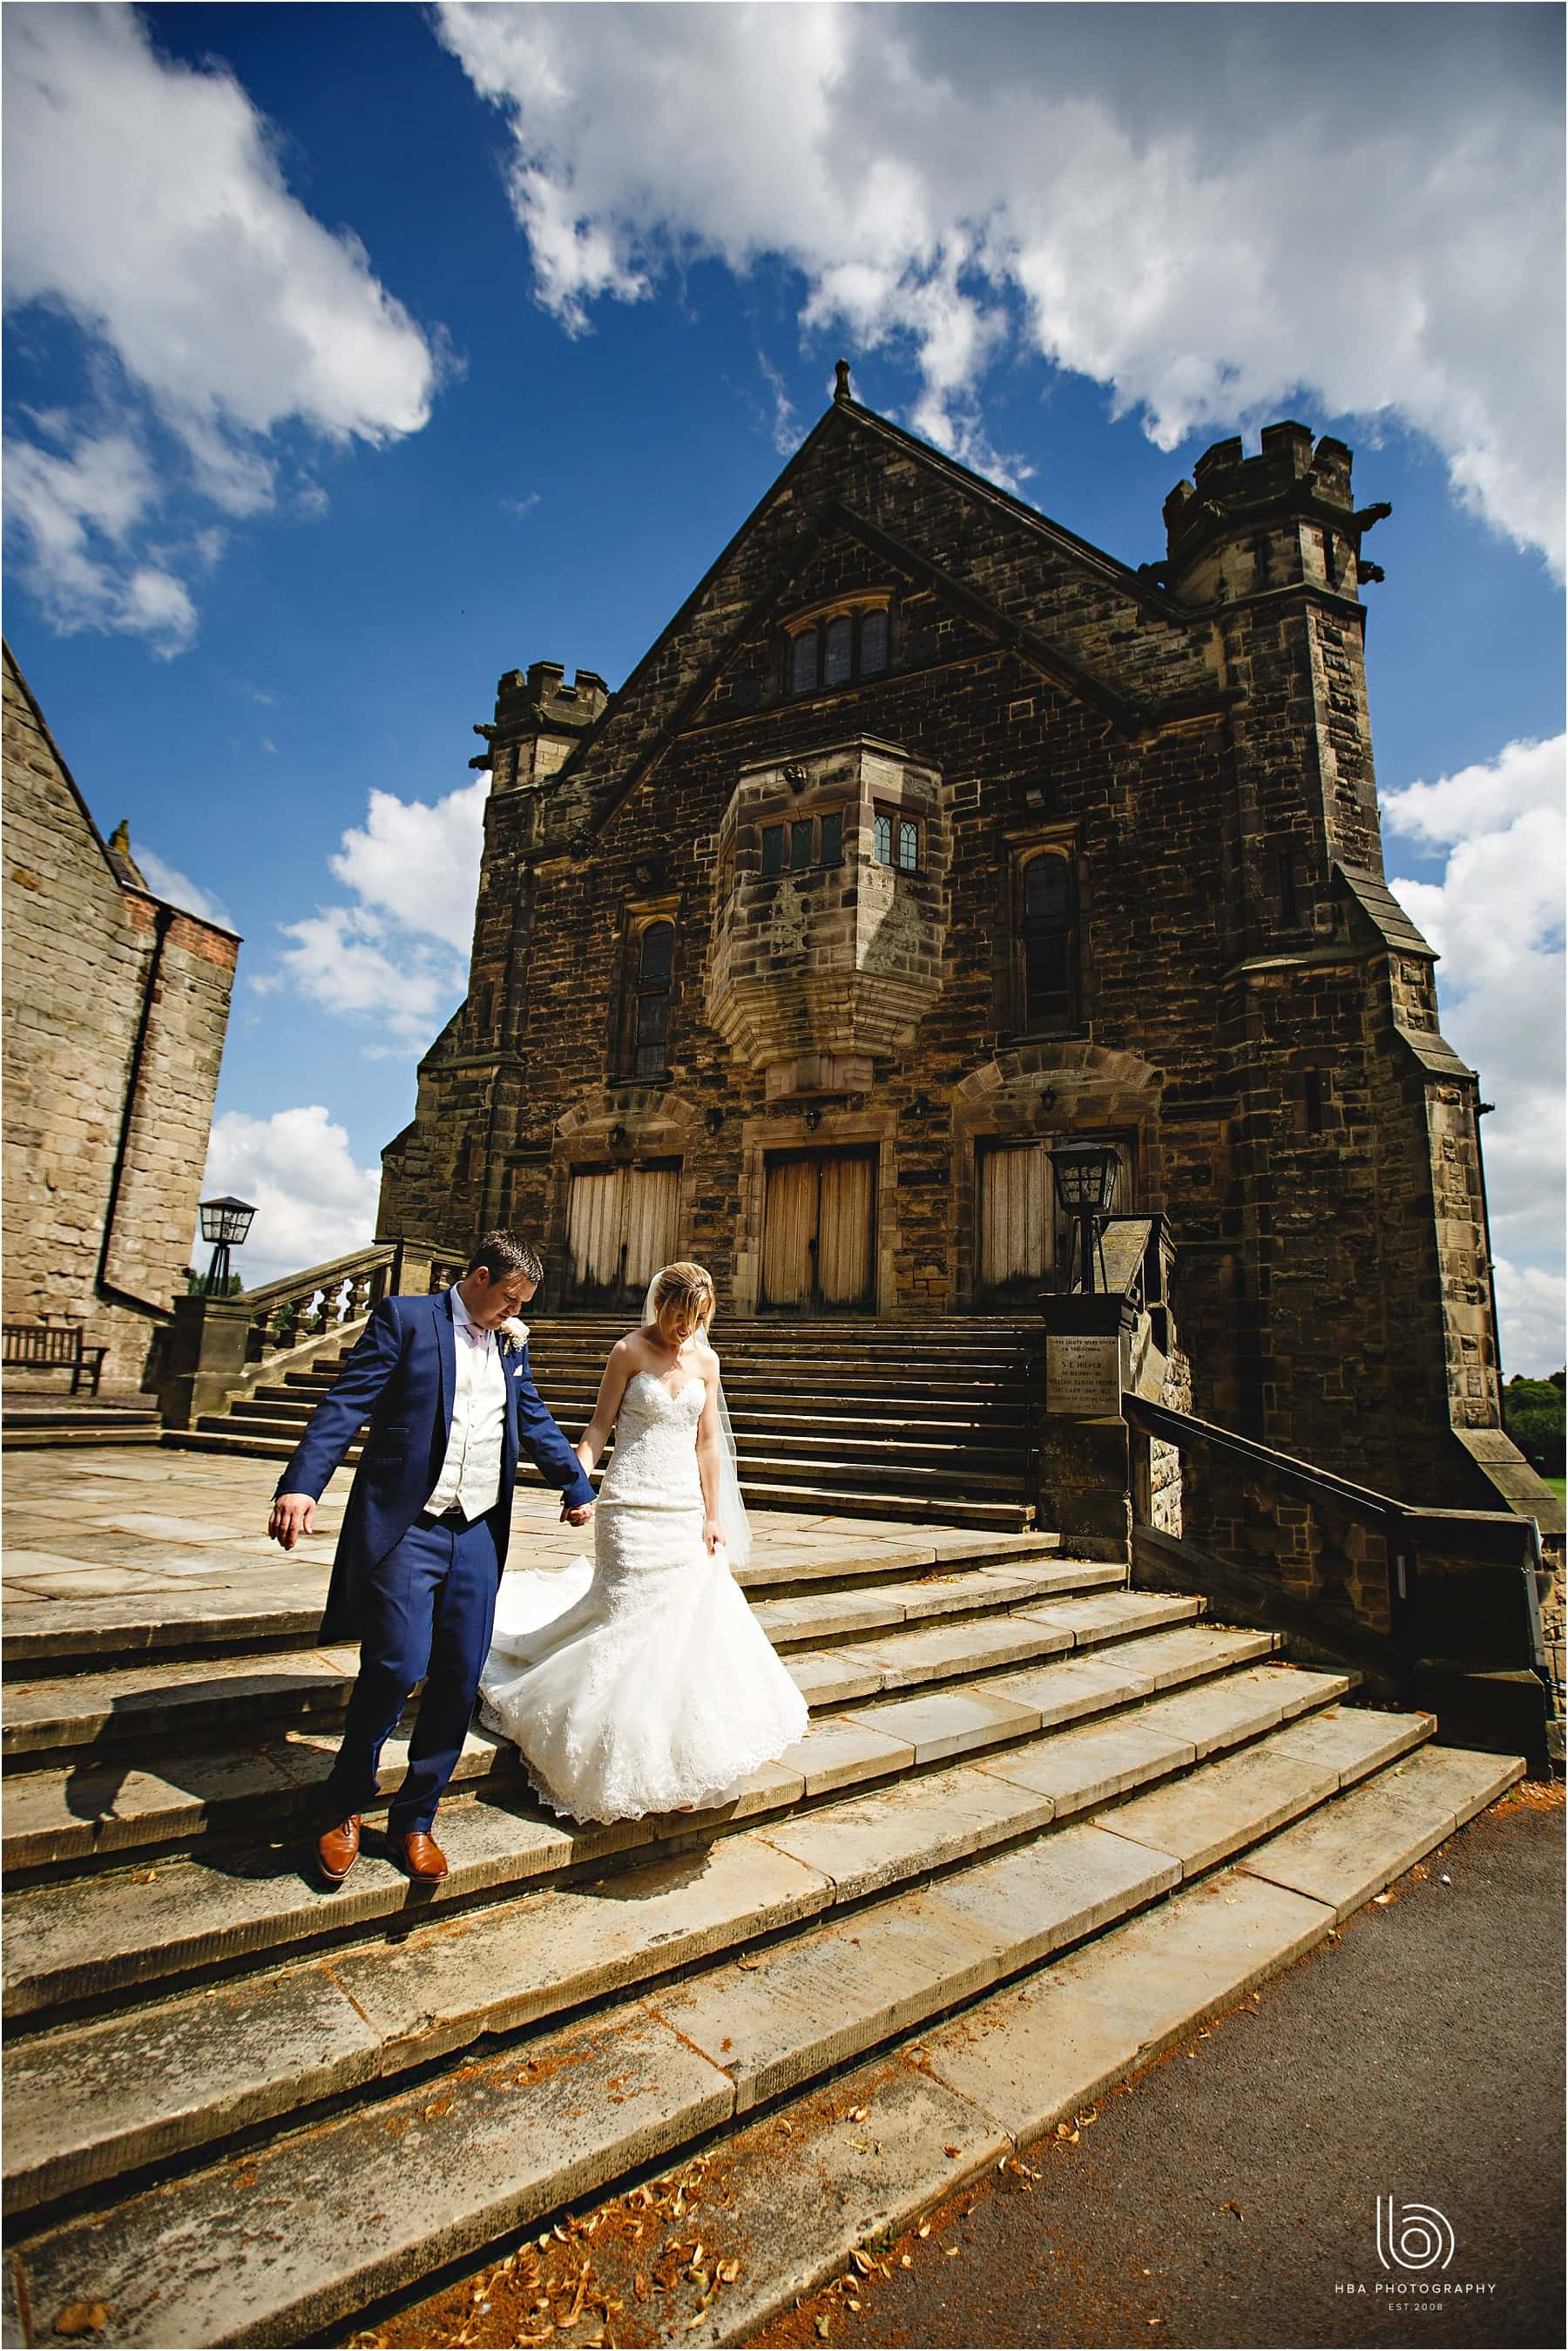 the bride & groom walking down the steps infront of Pears Hall at Repton School